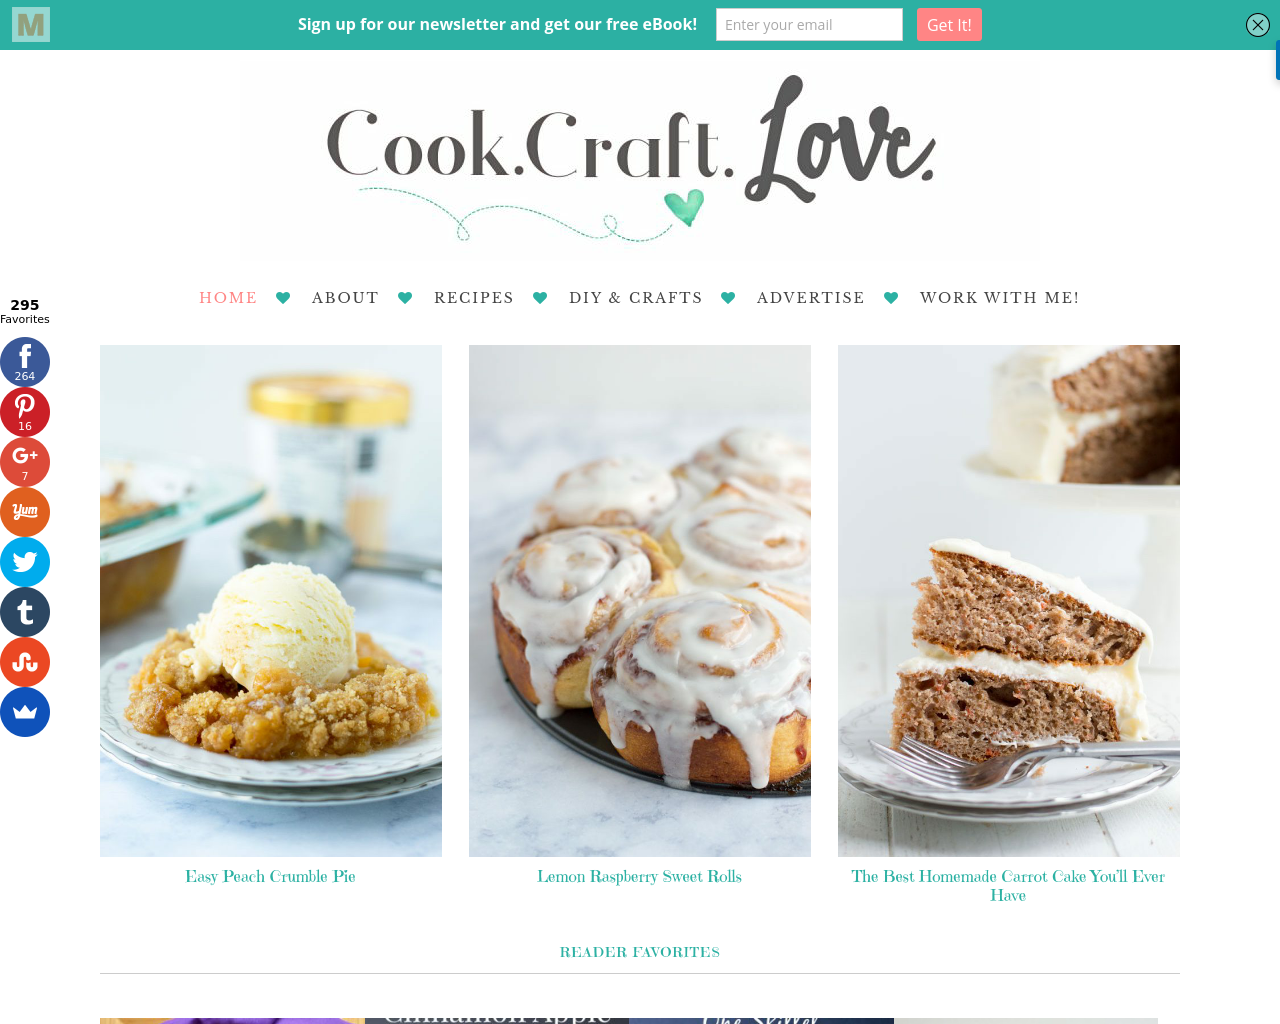 Cook-Craft-Love-Advertising-Reviews-Pricing